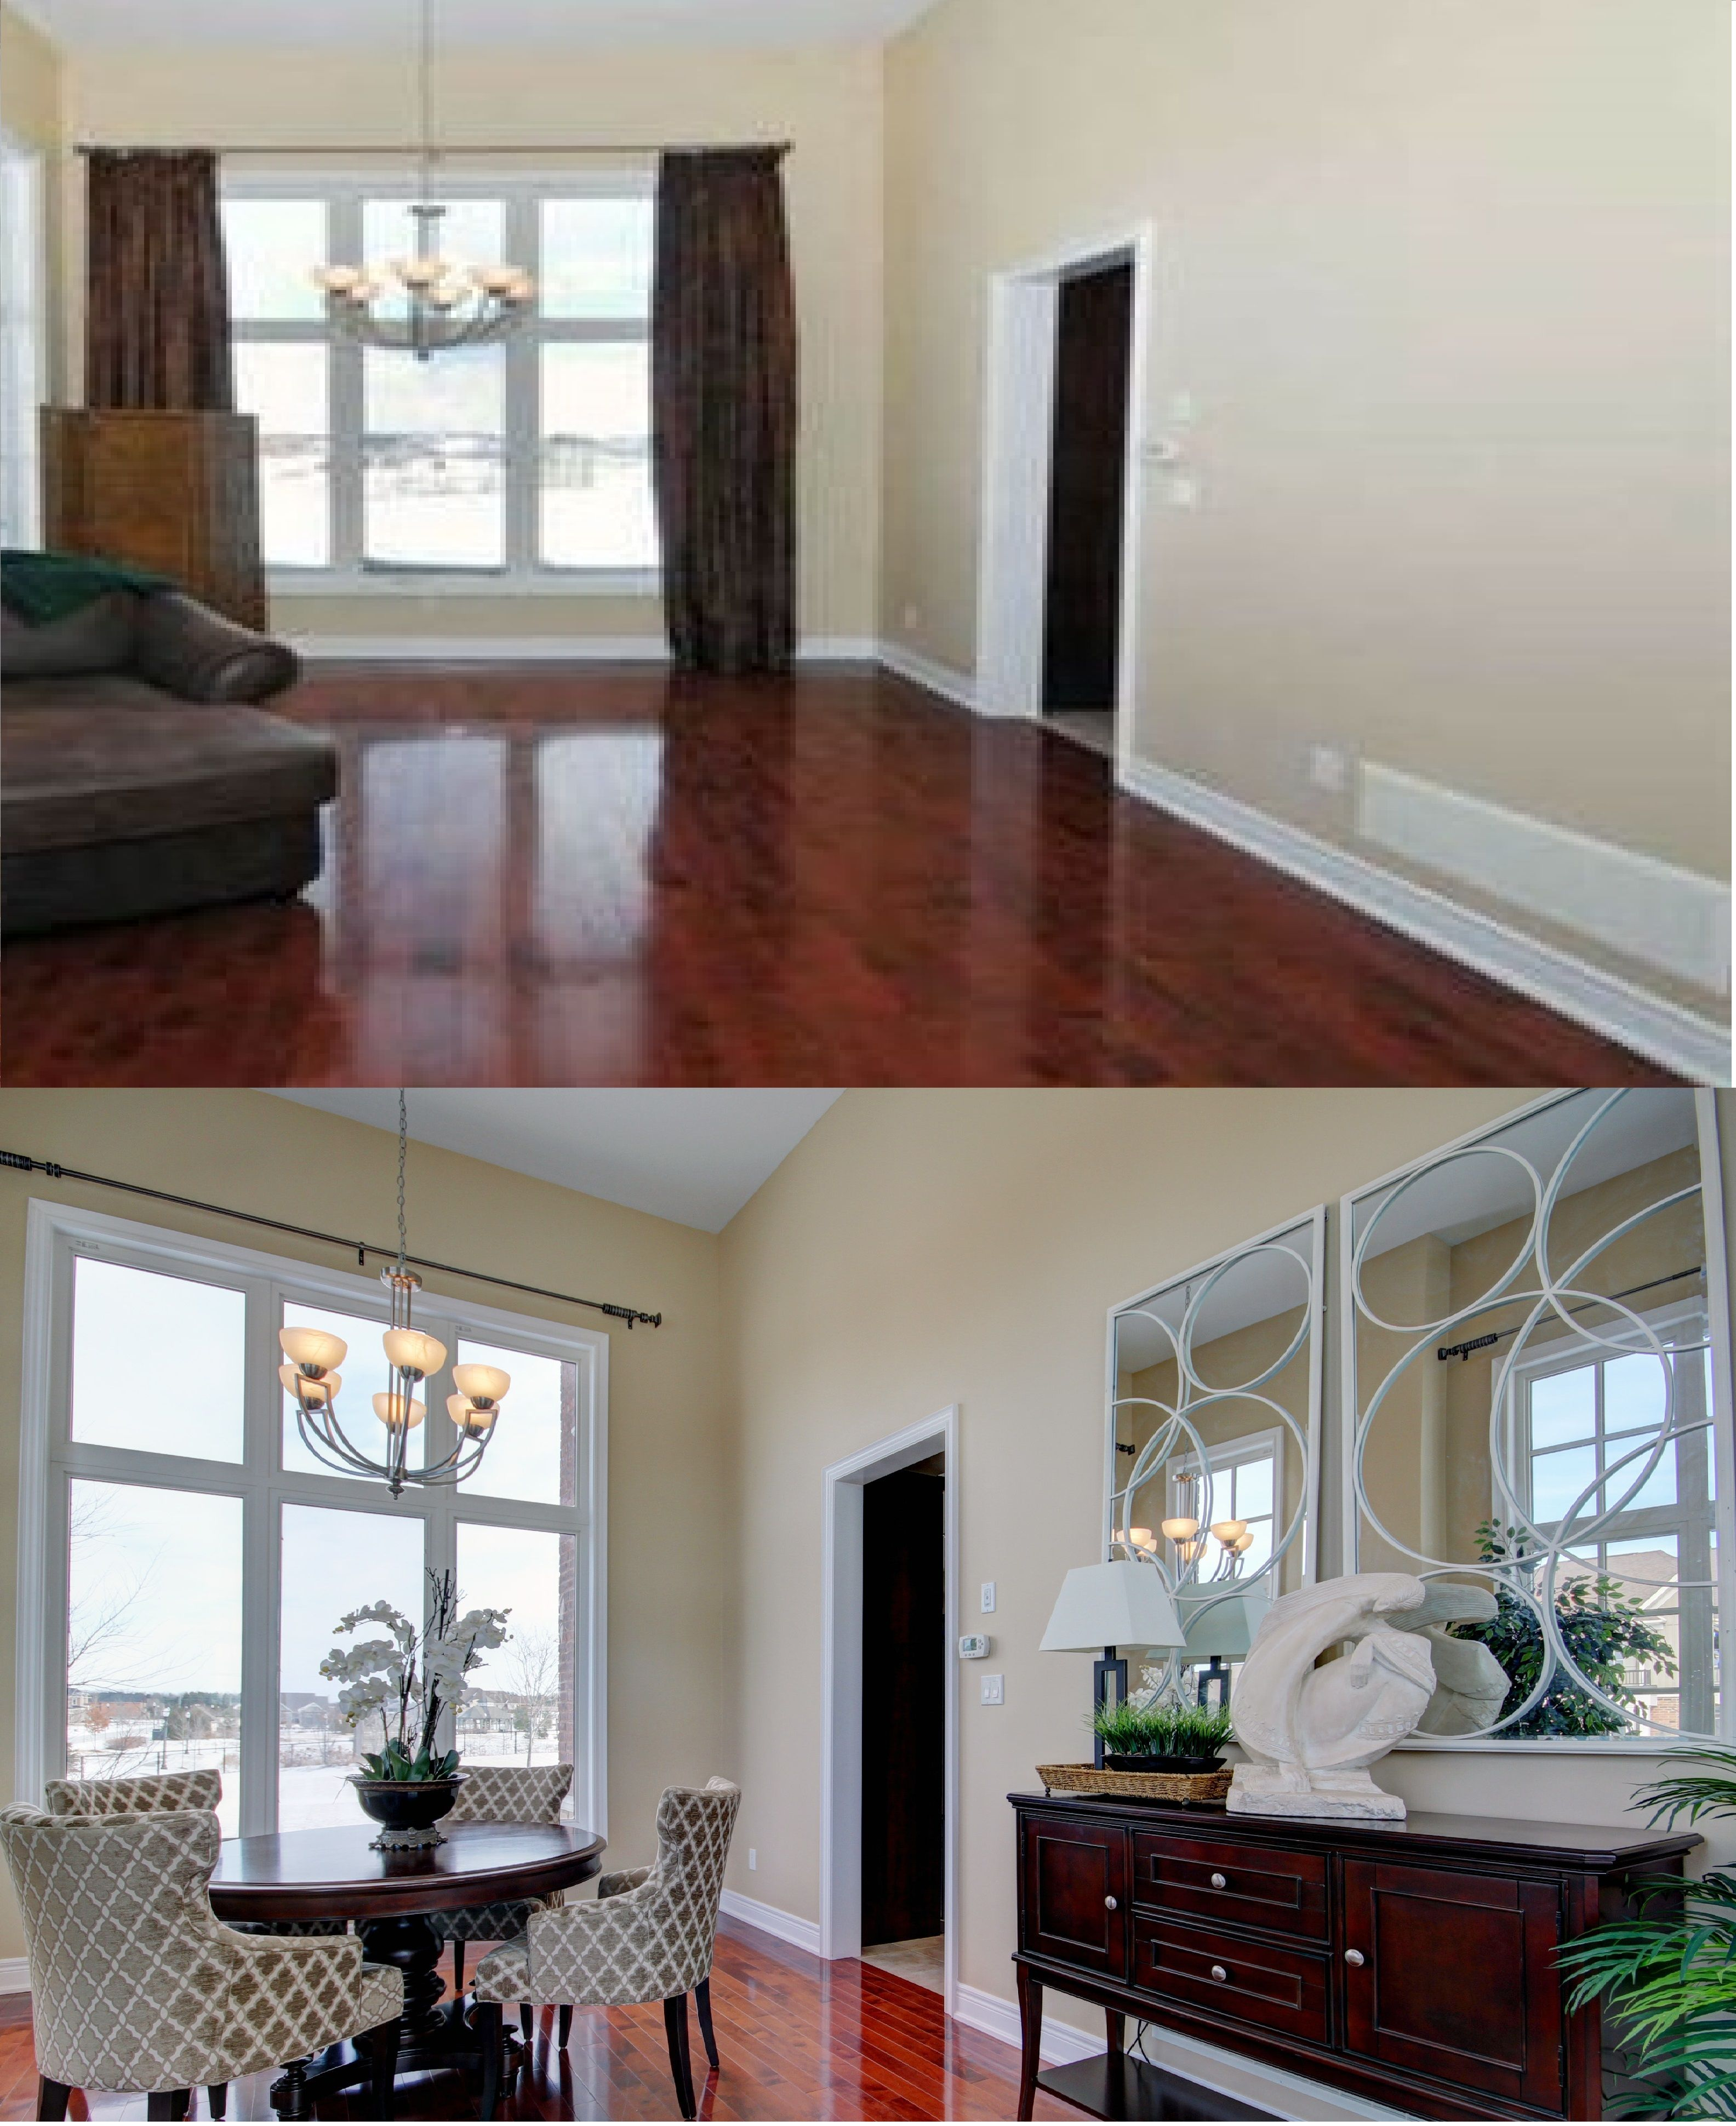 Home Staging Dining Room Table: Dining Room Before After Home Staging